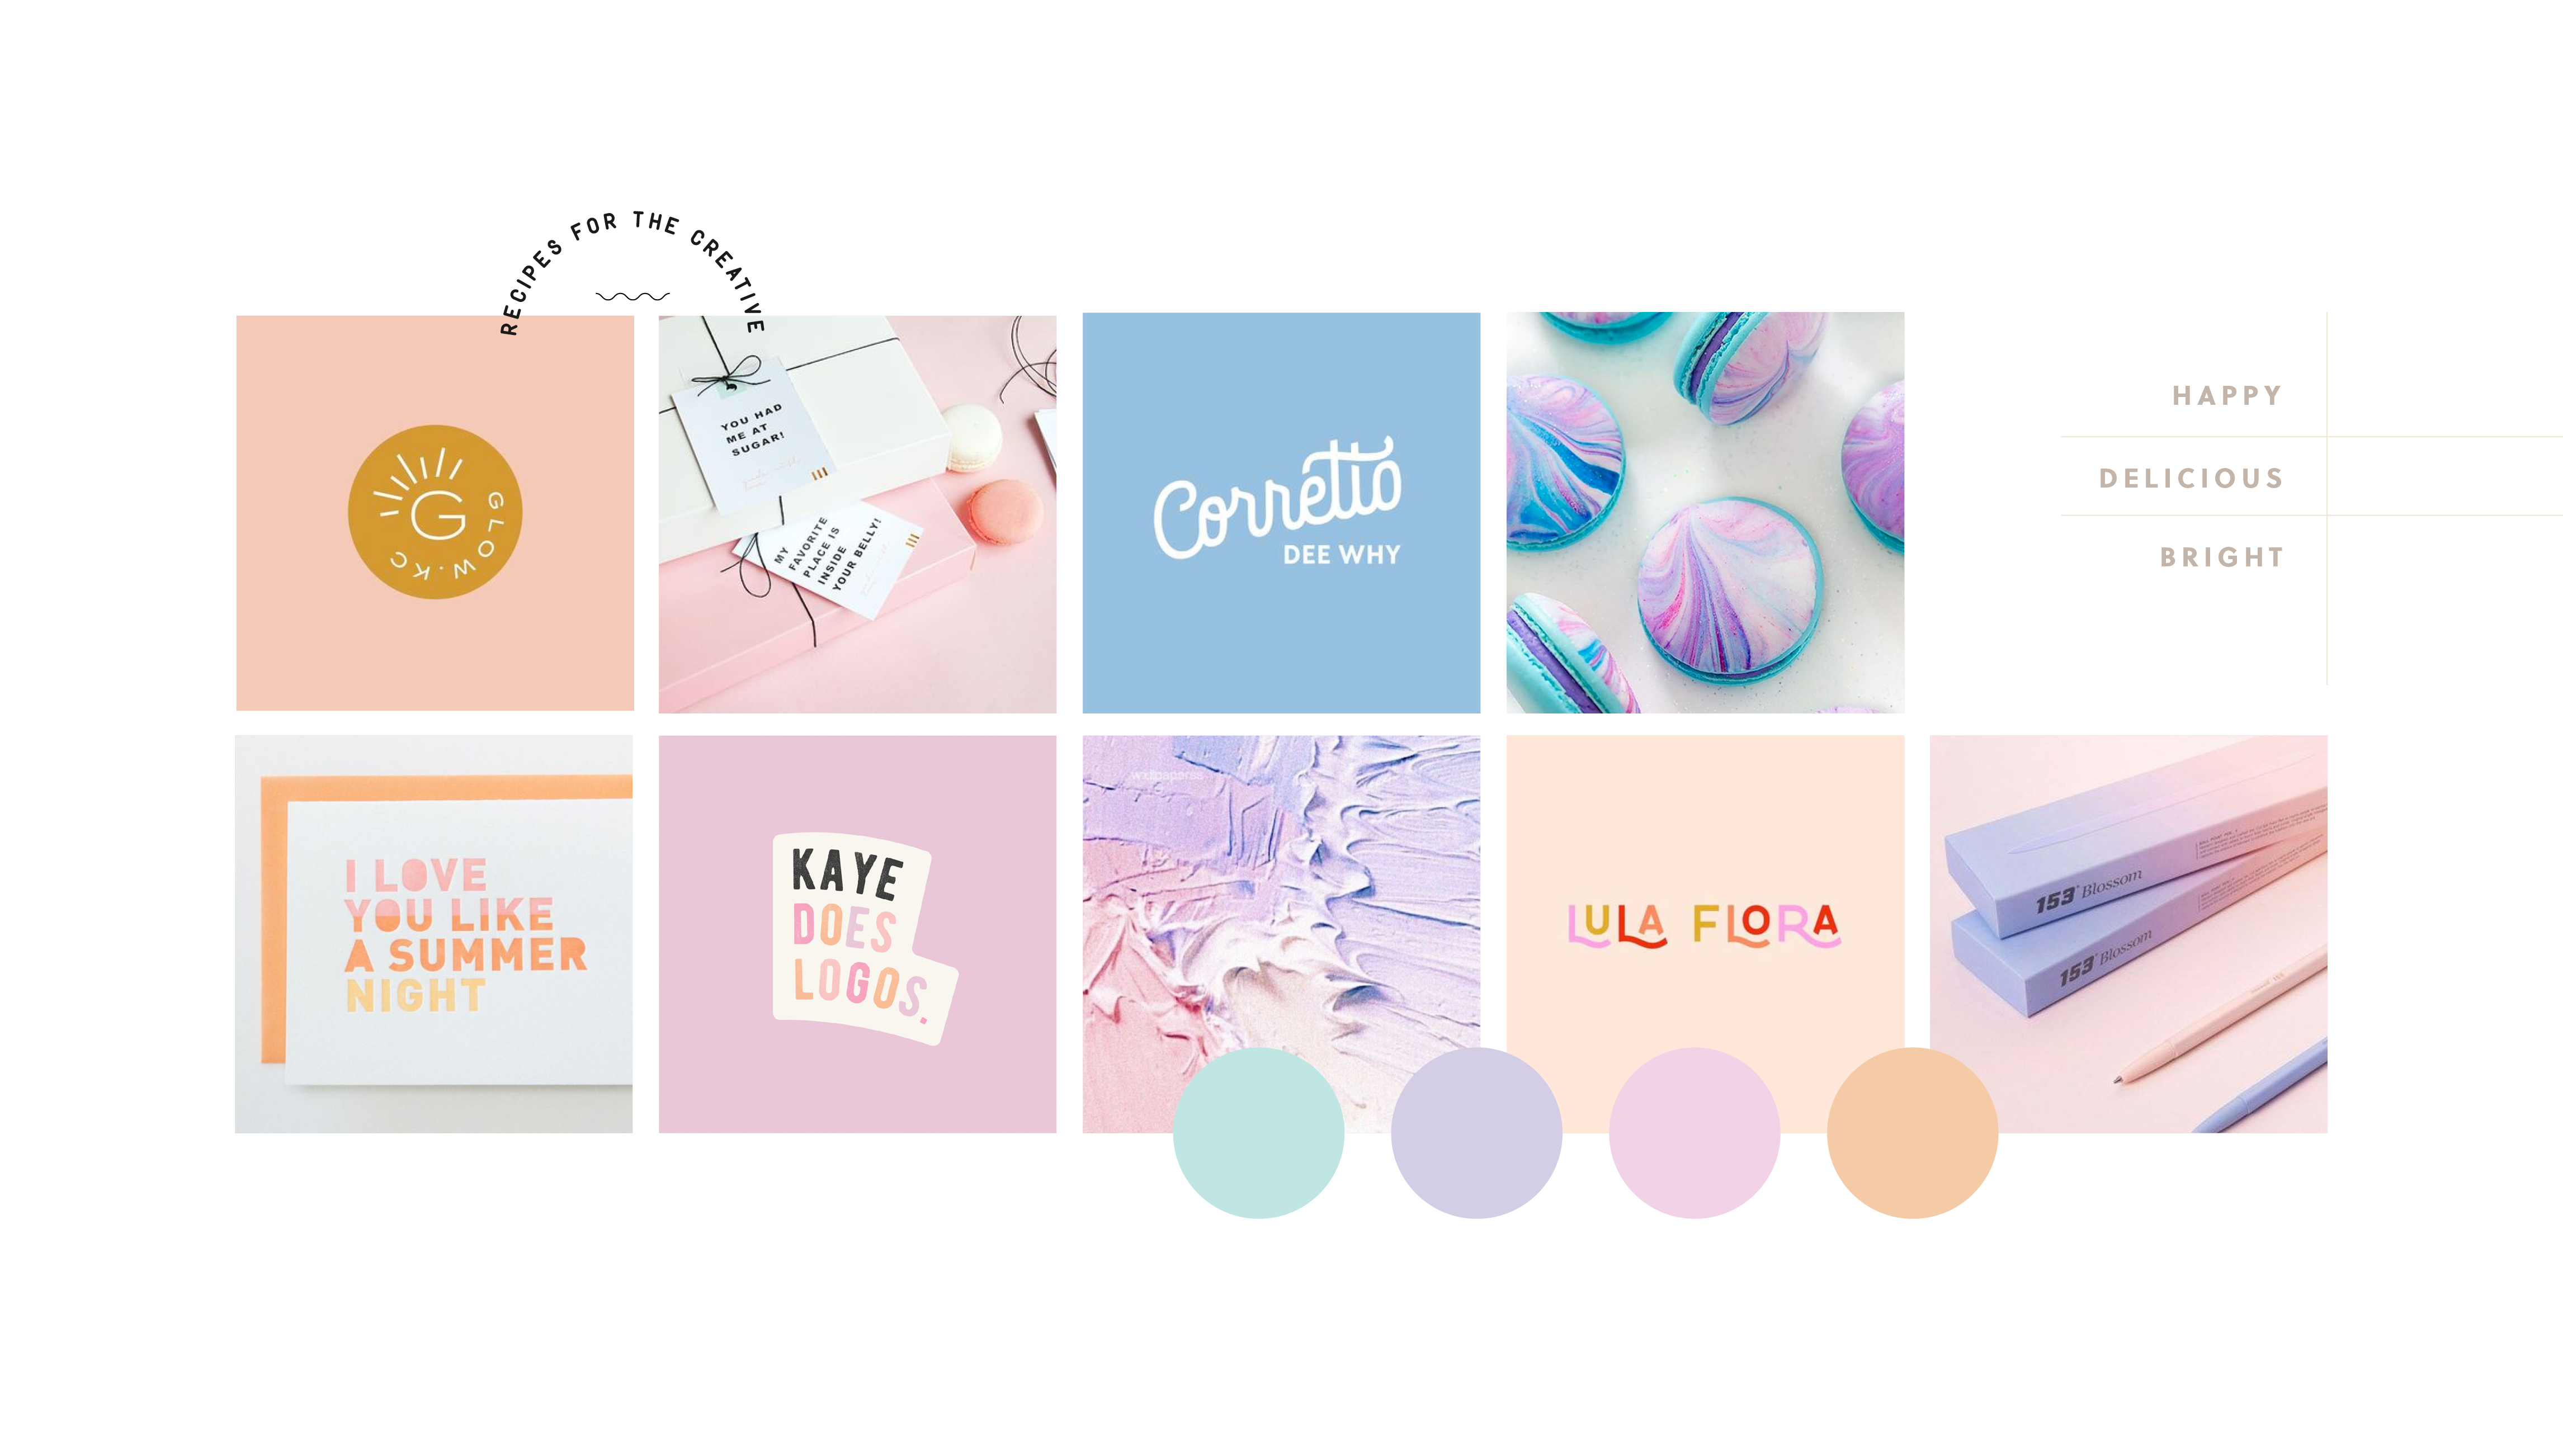 Moodboard for Amy Treasure, providing simple yet delicious dessert recipes - designed by Wiltshire-based graphic designer, Kaye Huett